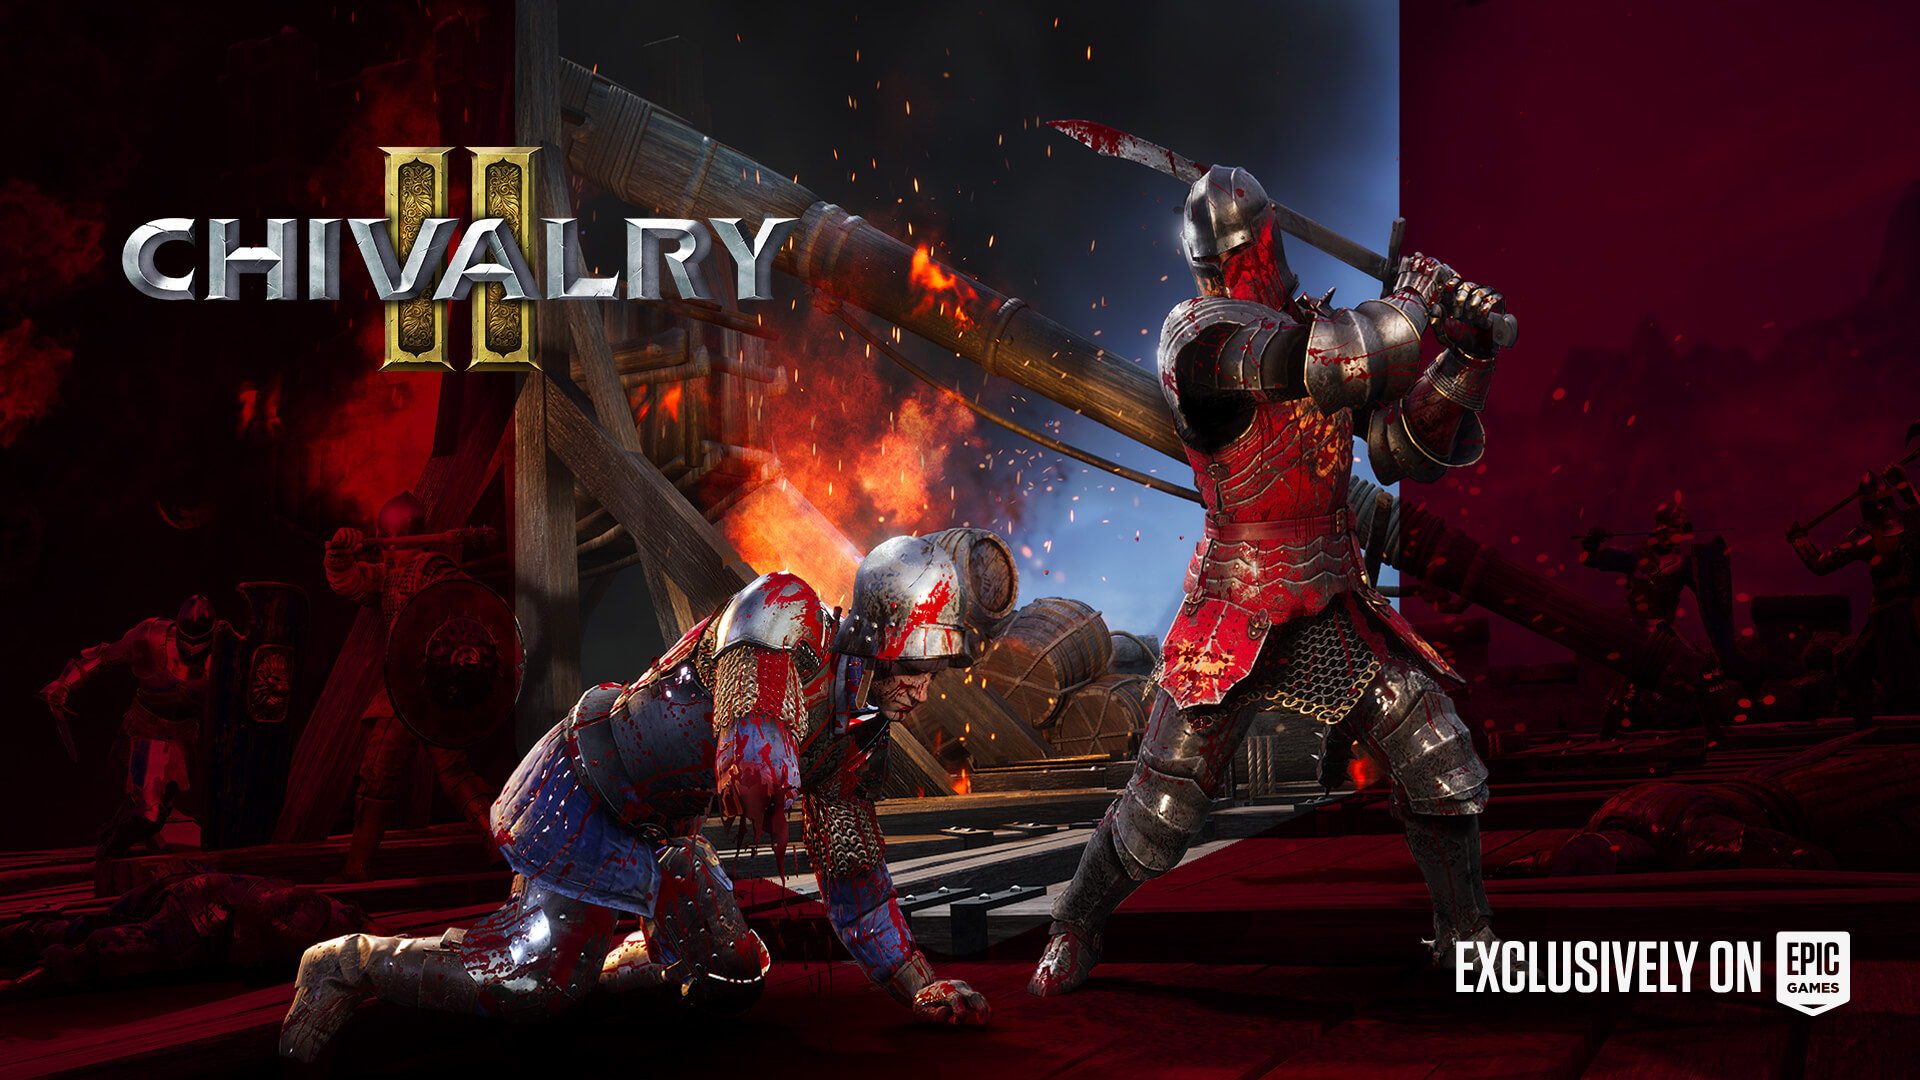 Chivalry 2 For Pc Exclusively On Epic Games Store